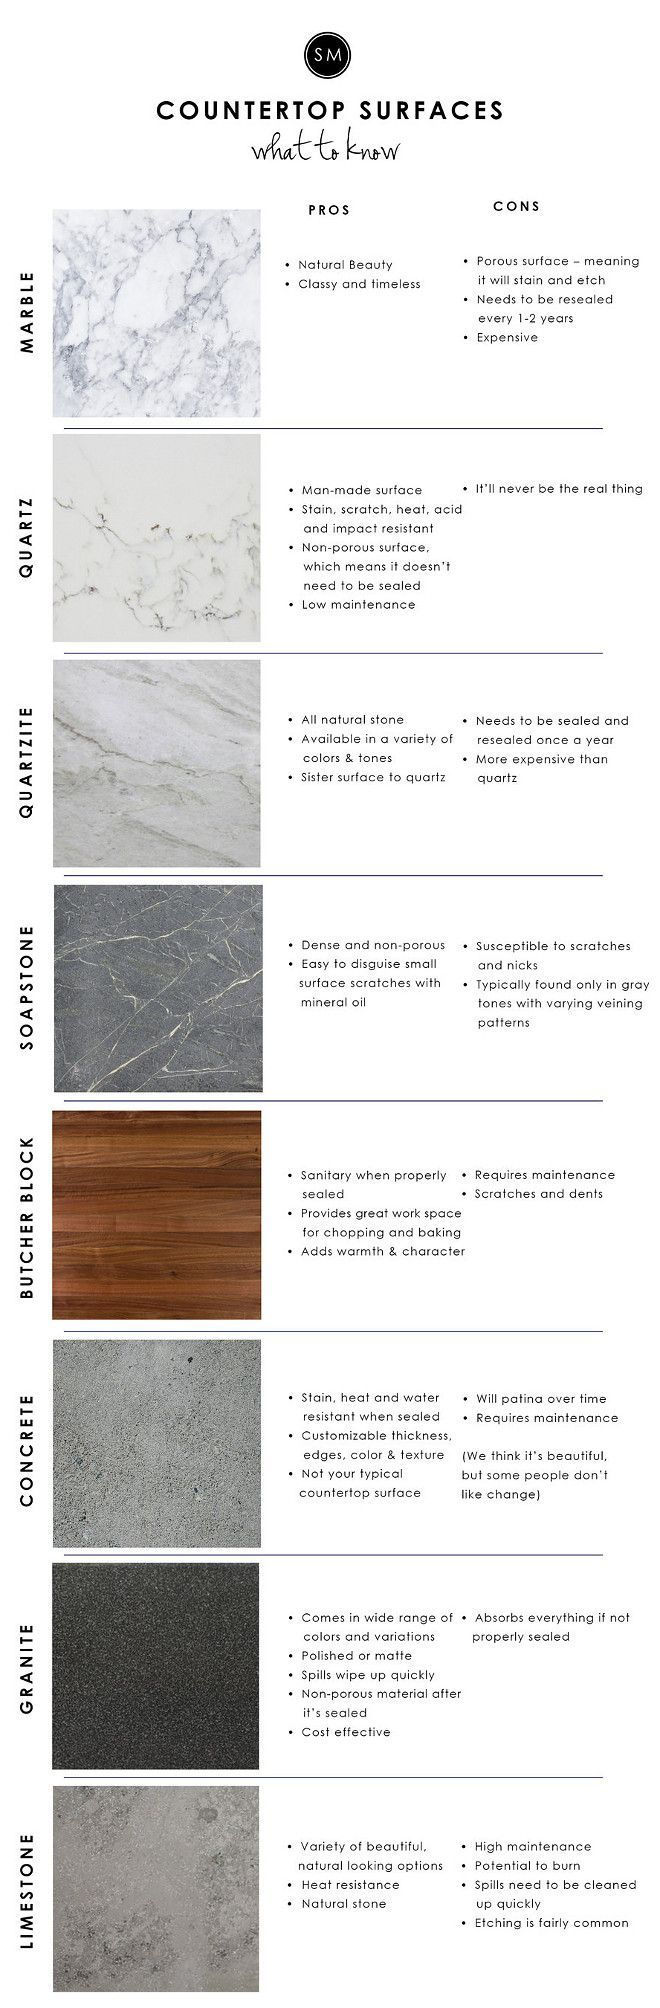 Countertops - Pros and cons about Marble, Quartz, Quartzite, Soapstone, Butcher Block, Concrete, Granite, Limestone